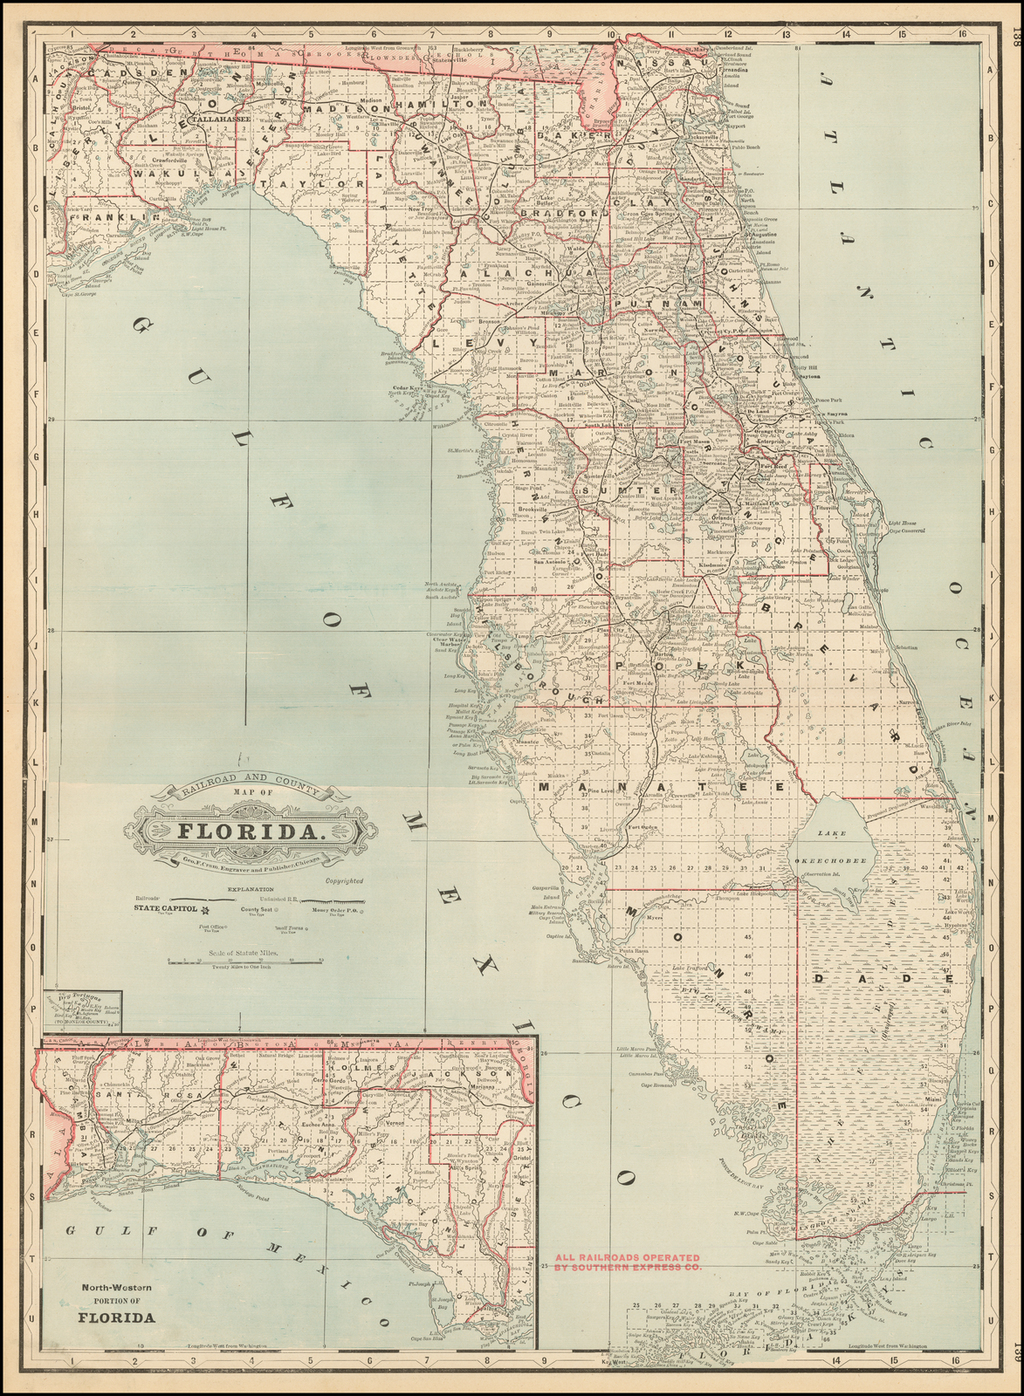 Rail Road and County Map of Florida By George F. Cram